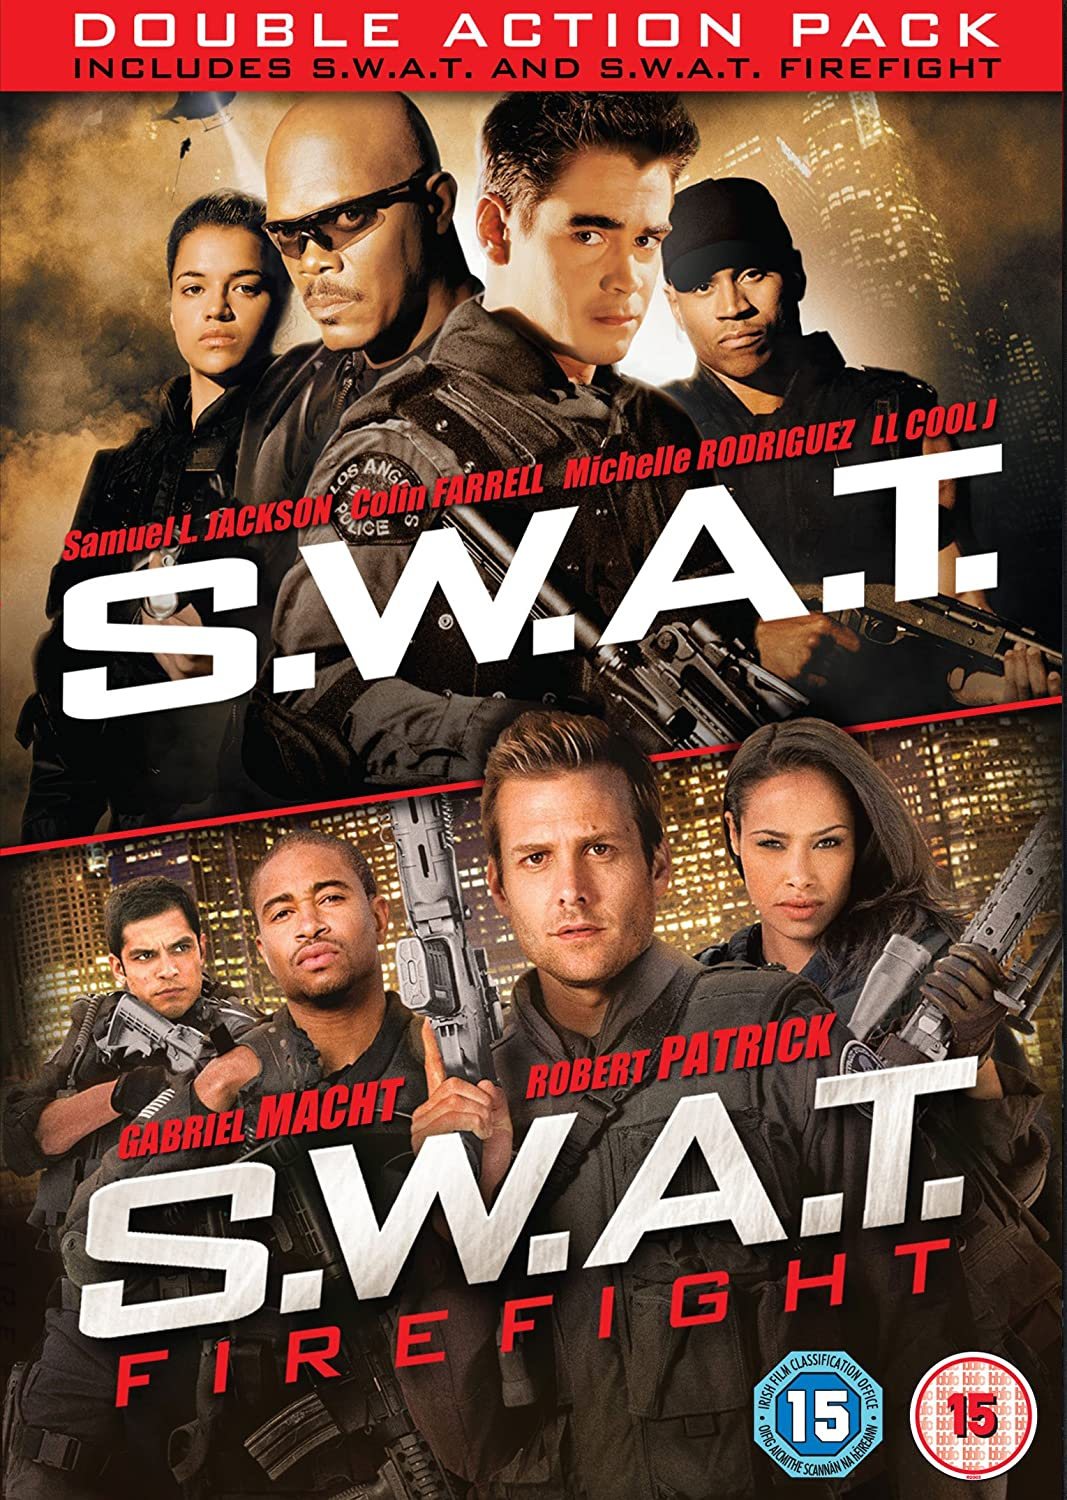 S.W.A.T. 2003 / S.W.A.T.: Firefight - Set Reino Unido DVD: Amazon.es: Movie, Film: Cine y Series TV